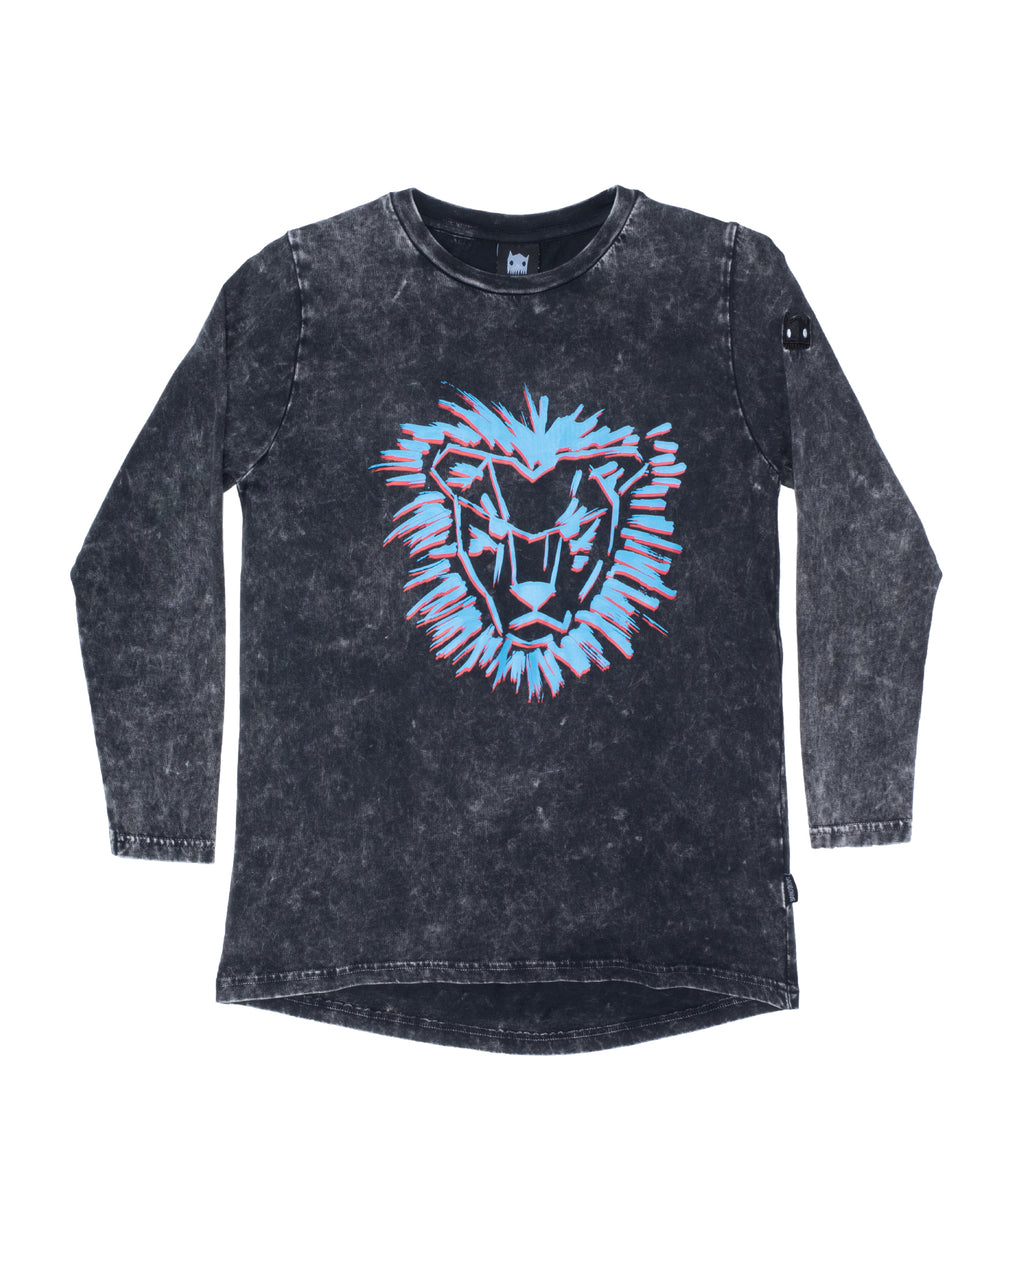 Band of Boys - Lion Mane L/Sleeved Scoop Back Tee - Vintage Black